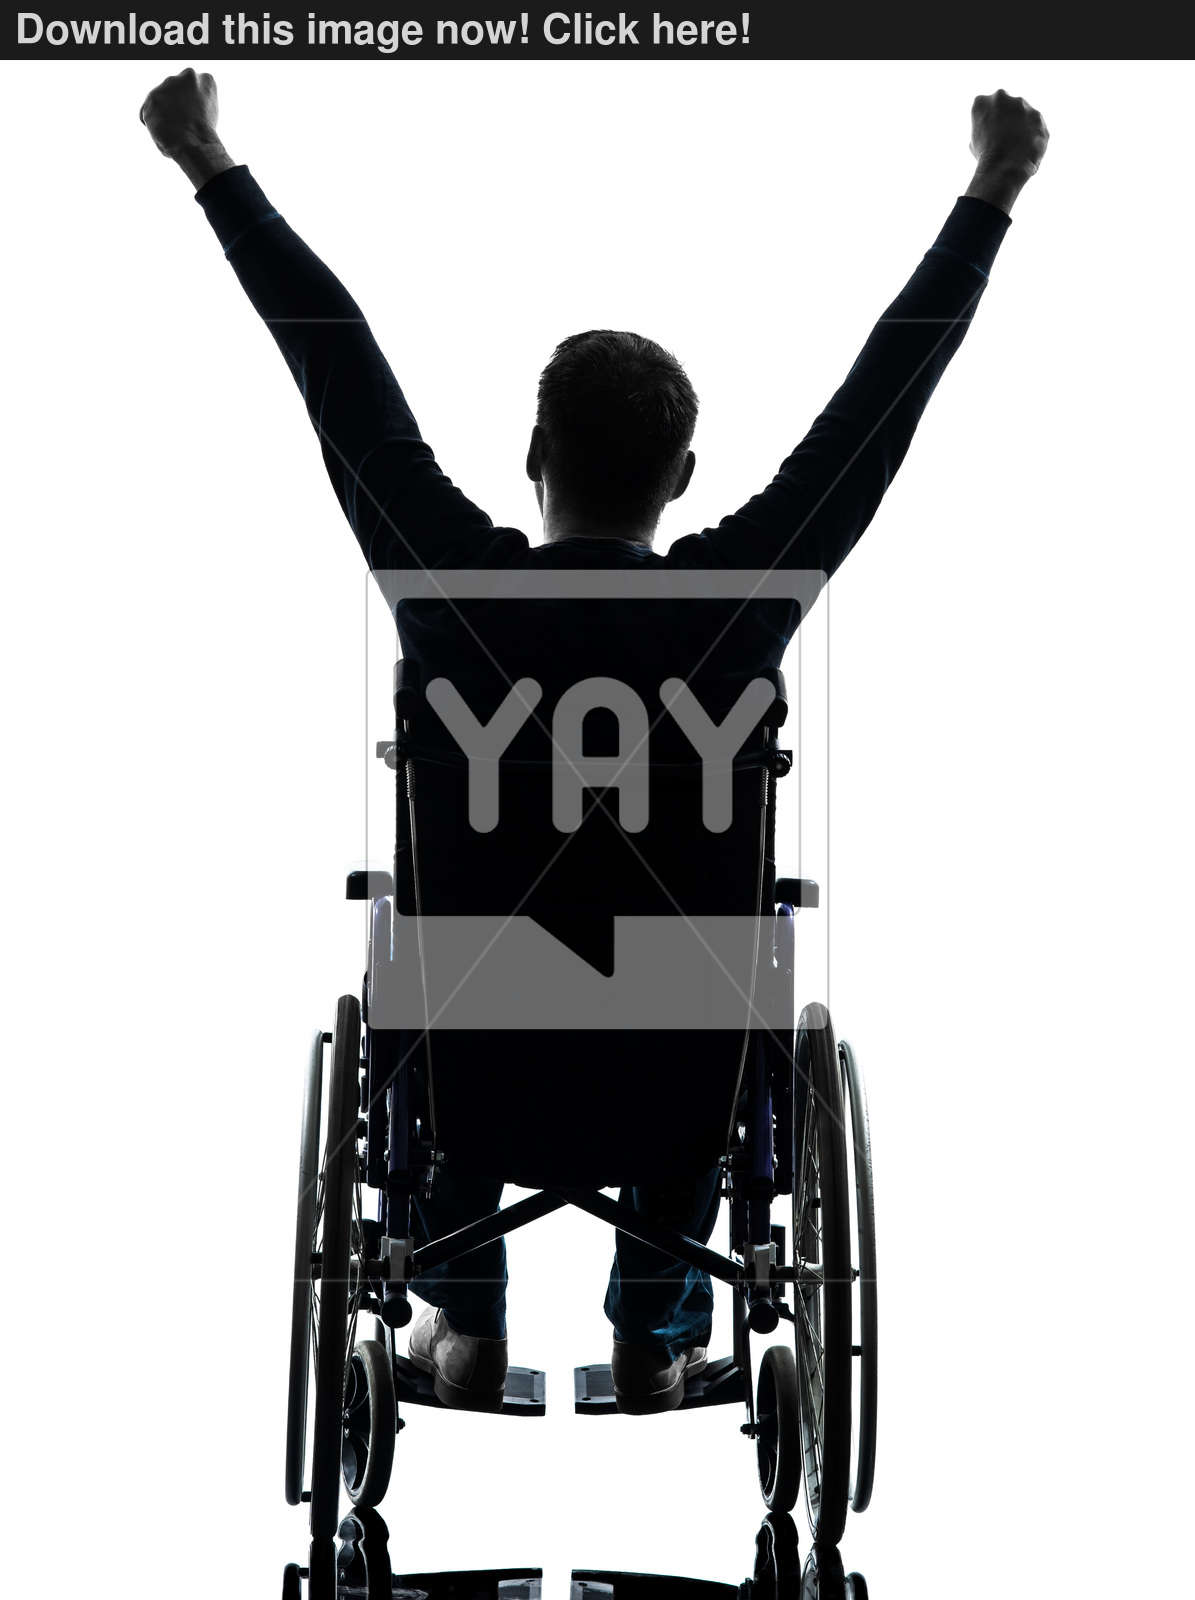 1195x1600 Rear View Handicapped Man Arms Raised In Wheelchair Silhouette